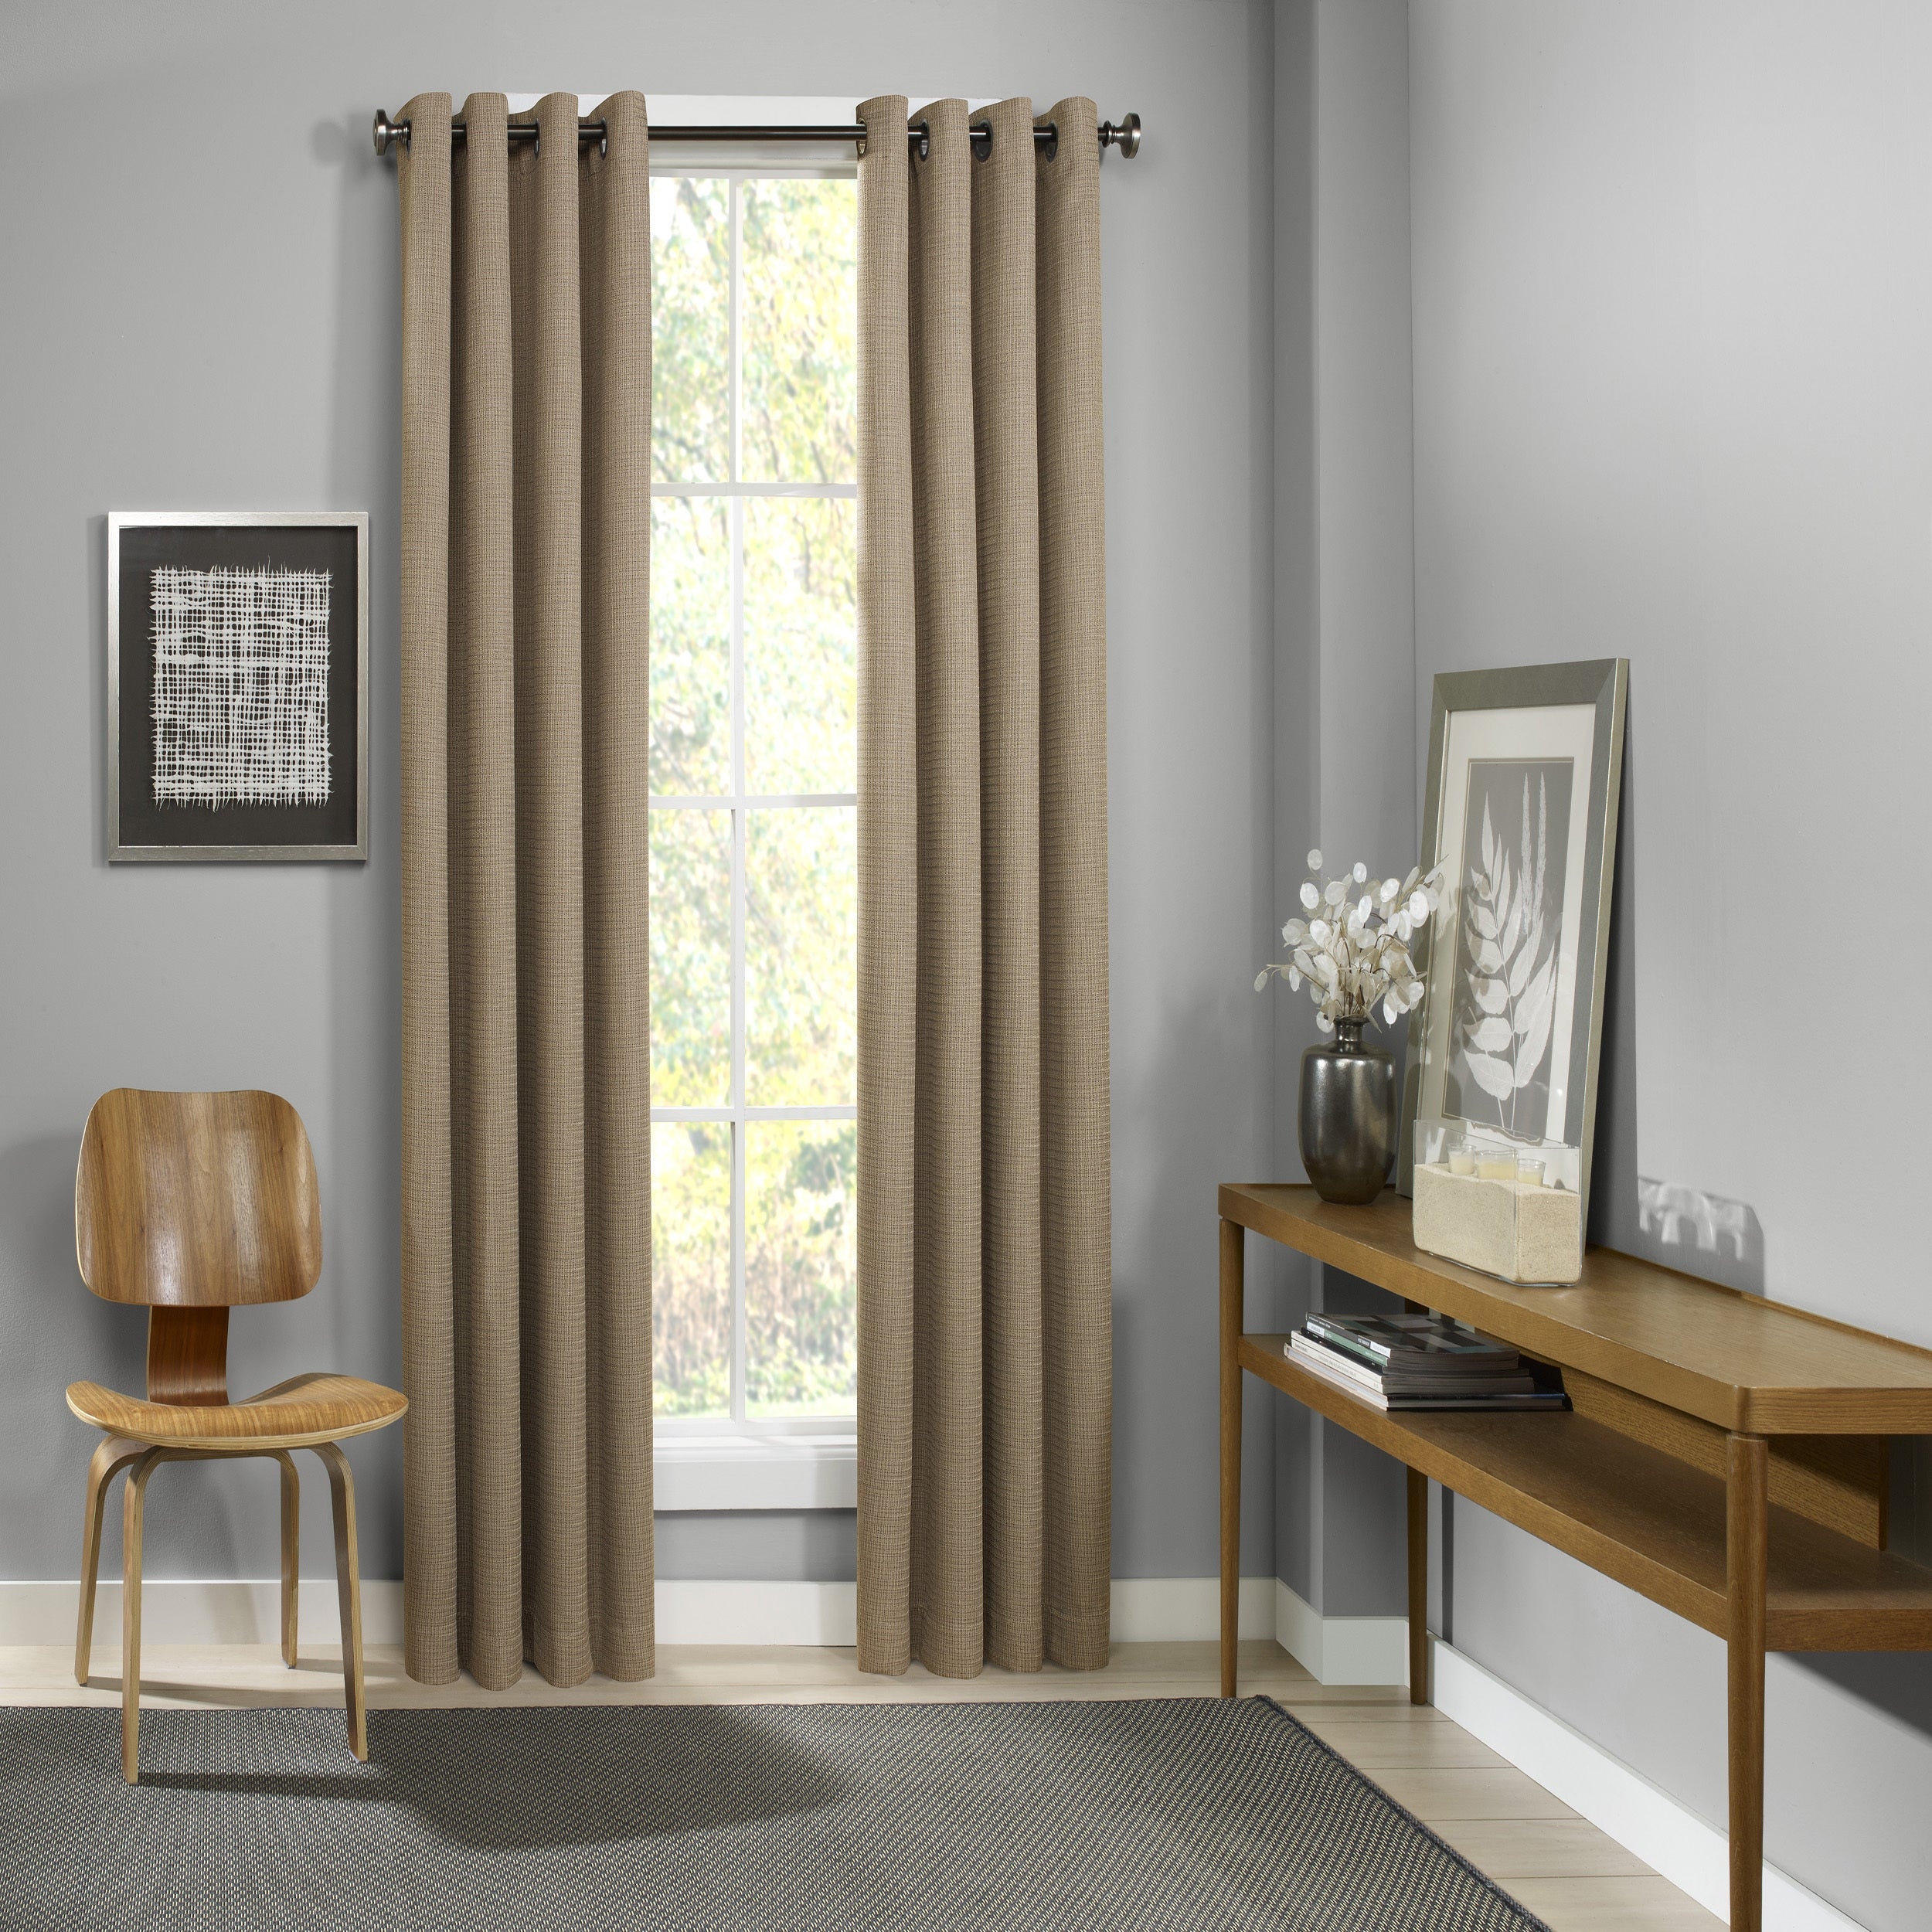 Eclipse Palisade Blackout Grommet Window Curtain Panel Intended For Eclipse Trevi Blackout Grommet Window Curtain Panels (View 11 of 20)